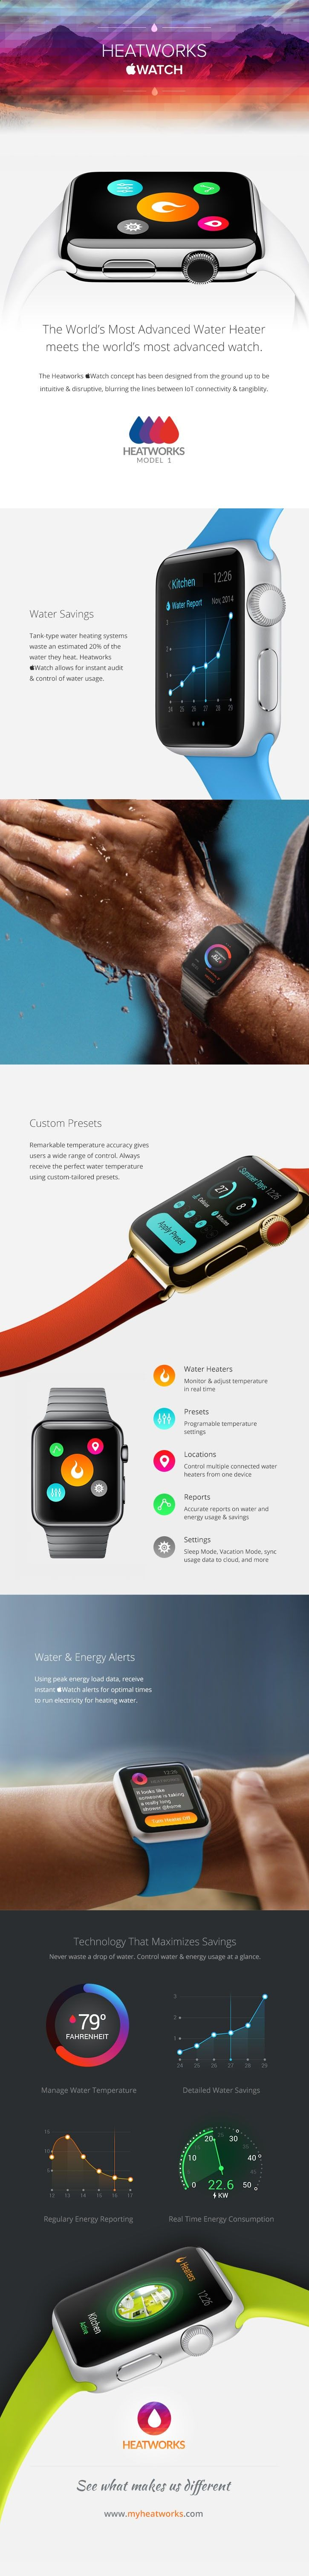 Tips For Choosing Smartwatch Heatworks Apple Watch - If you want to buy a smartwatch and you do not know which one, you need to review well not only the prices, but also which one is right for you. To do this, we give you useful tips to make the best choice.